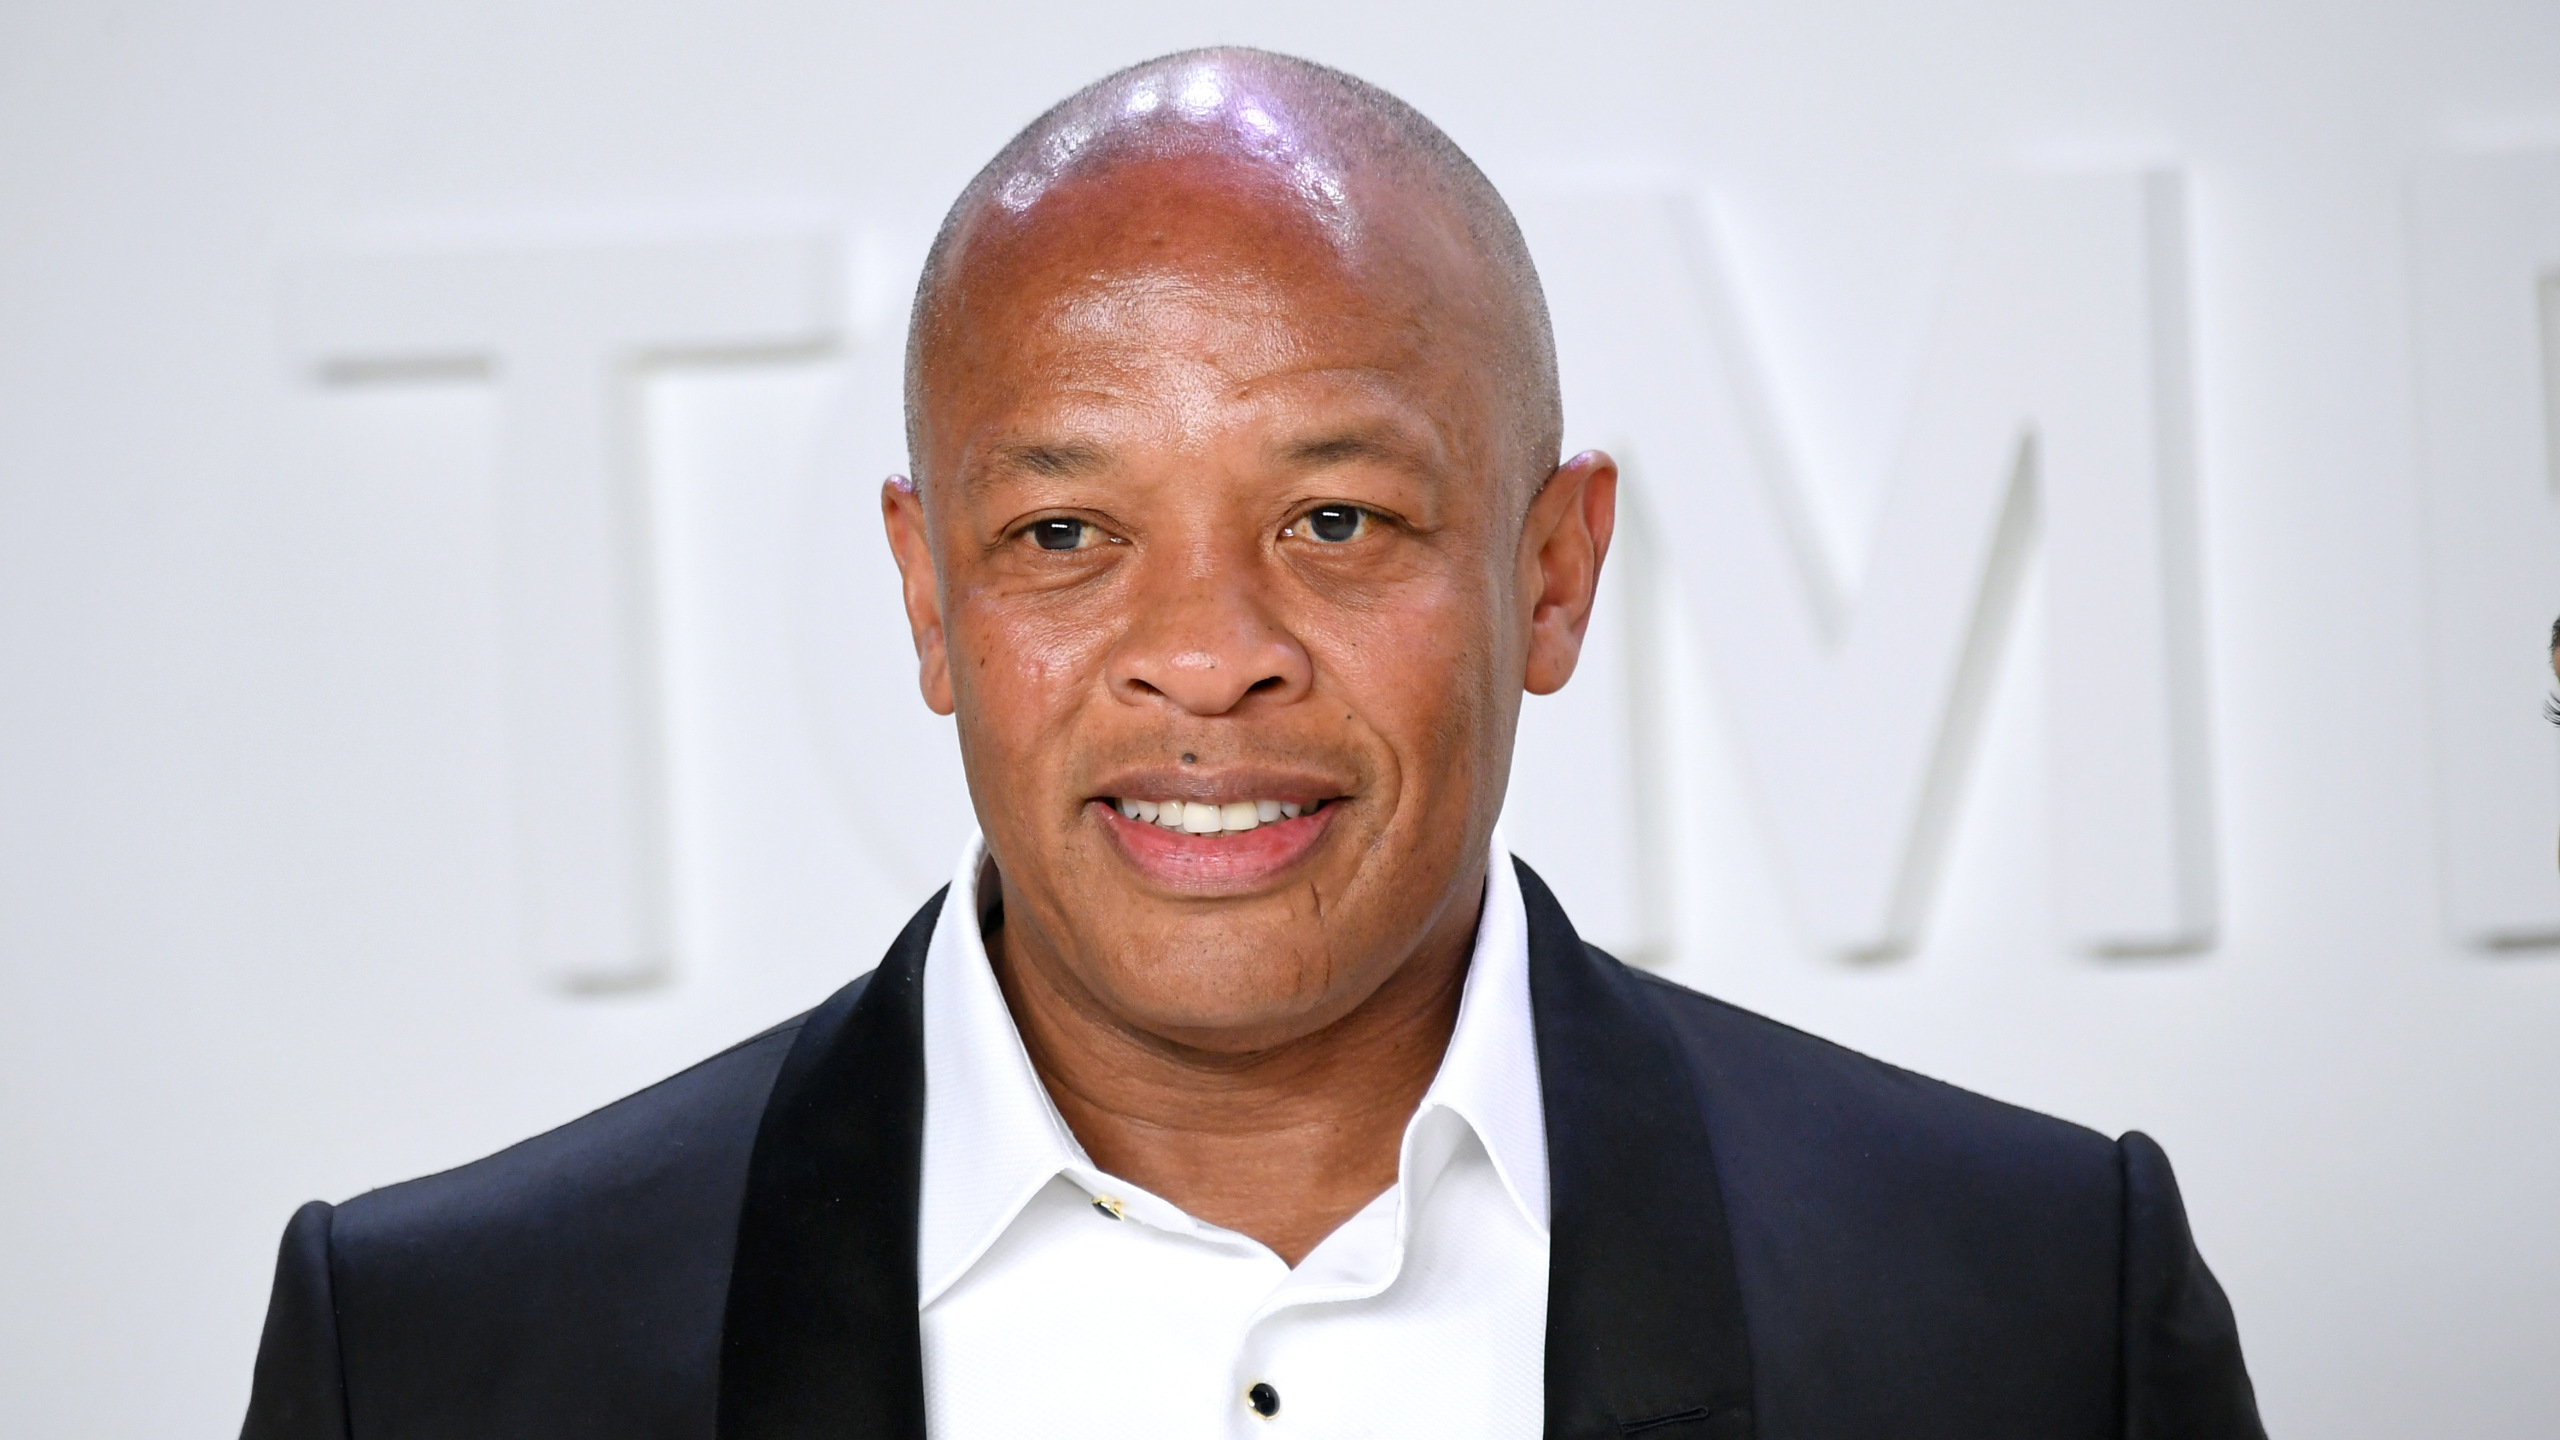 """Dr. Dre """"I'm Doing Great"""" After Suffering Brain Aneurysm"""